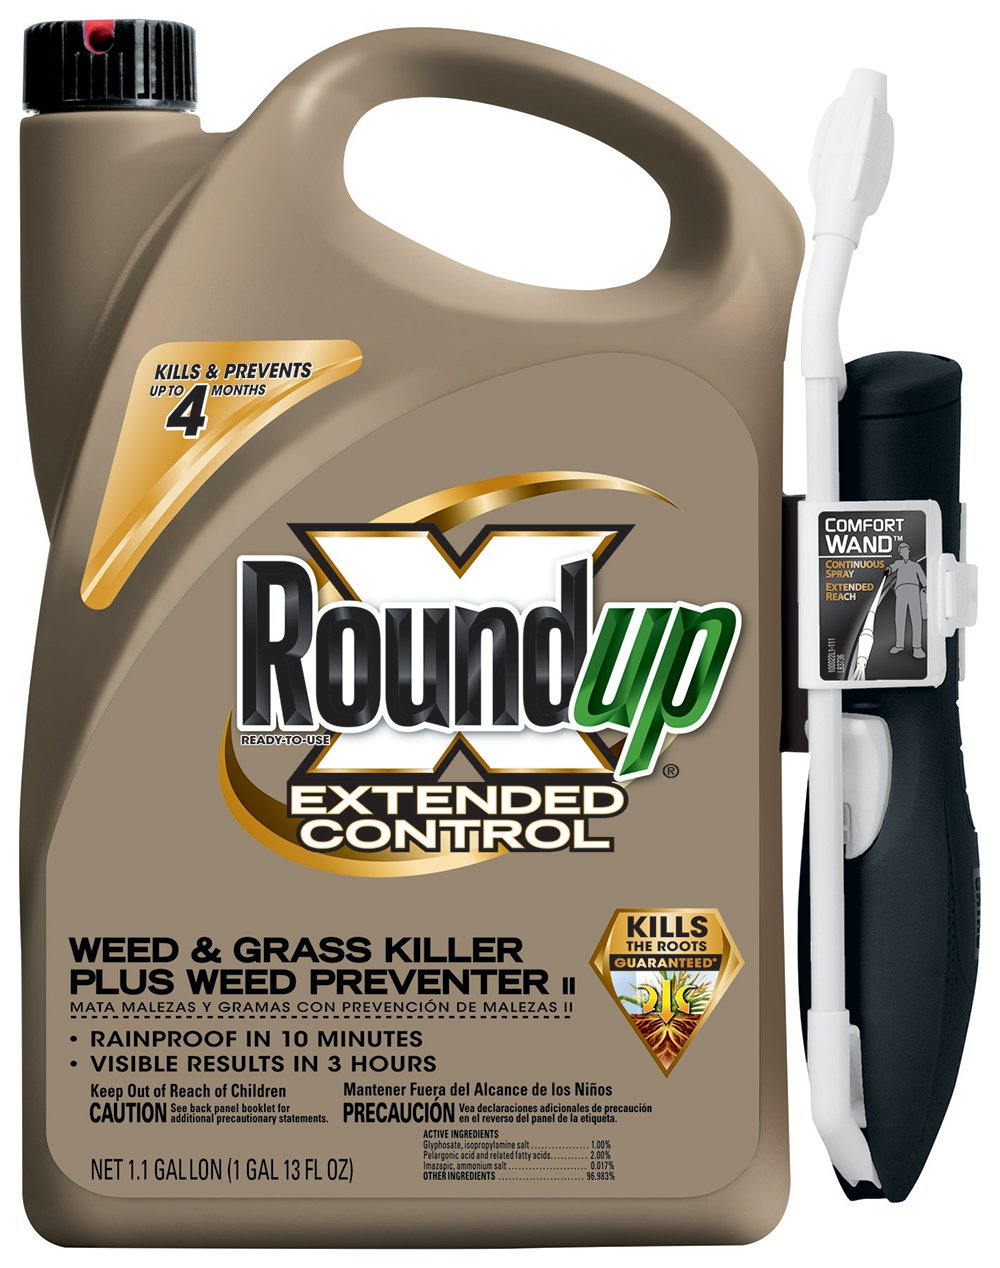 RoundUp Extended Control Weed and Grass Killer Plus Weed Preventer II RTU Comfort Wand Sprayer (Case of 4) by Roundup (Image #1)